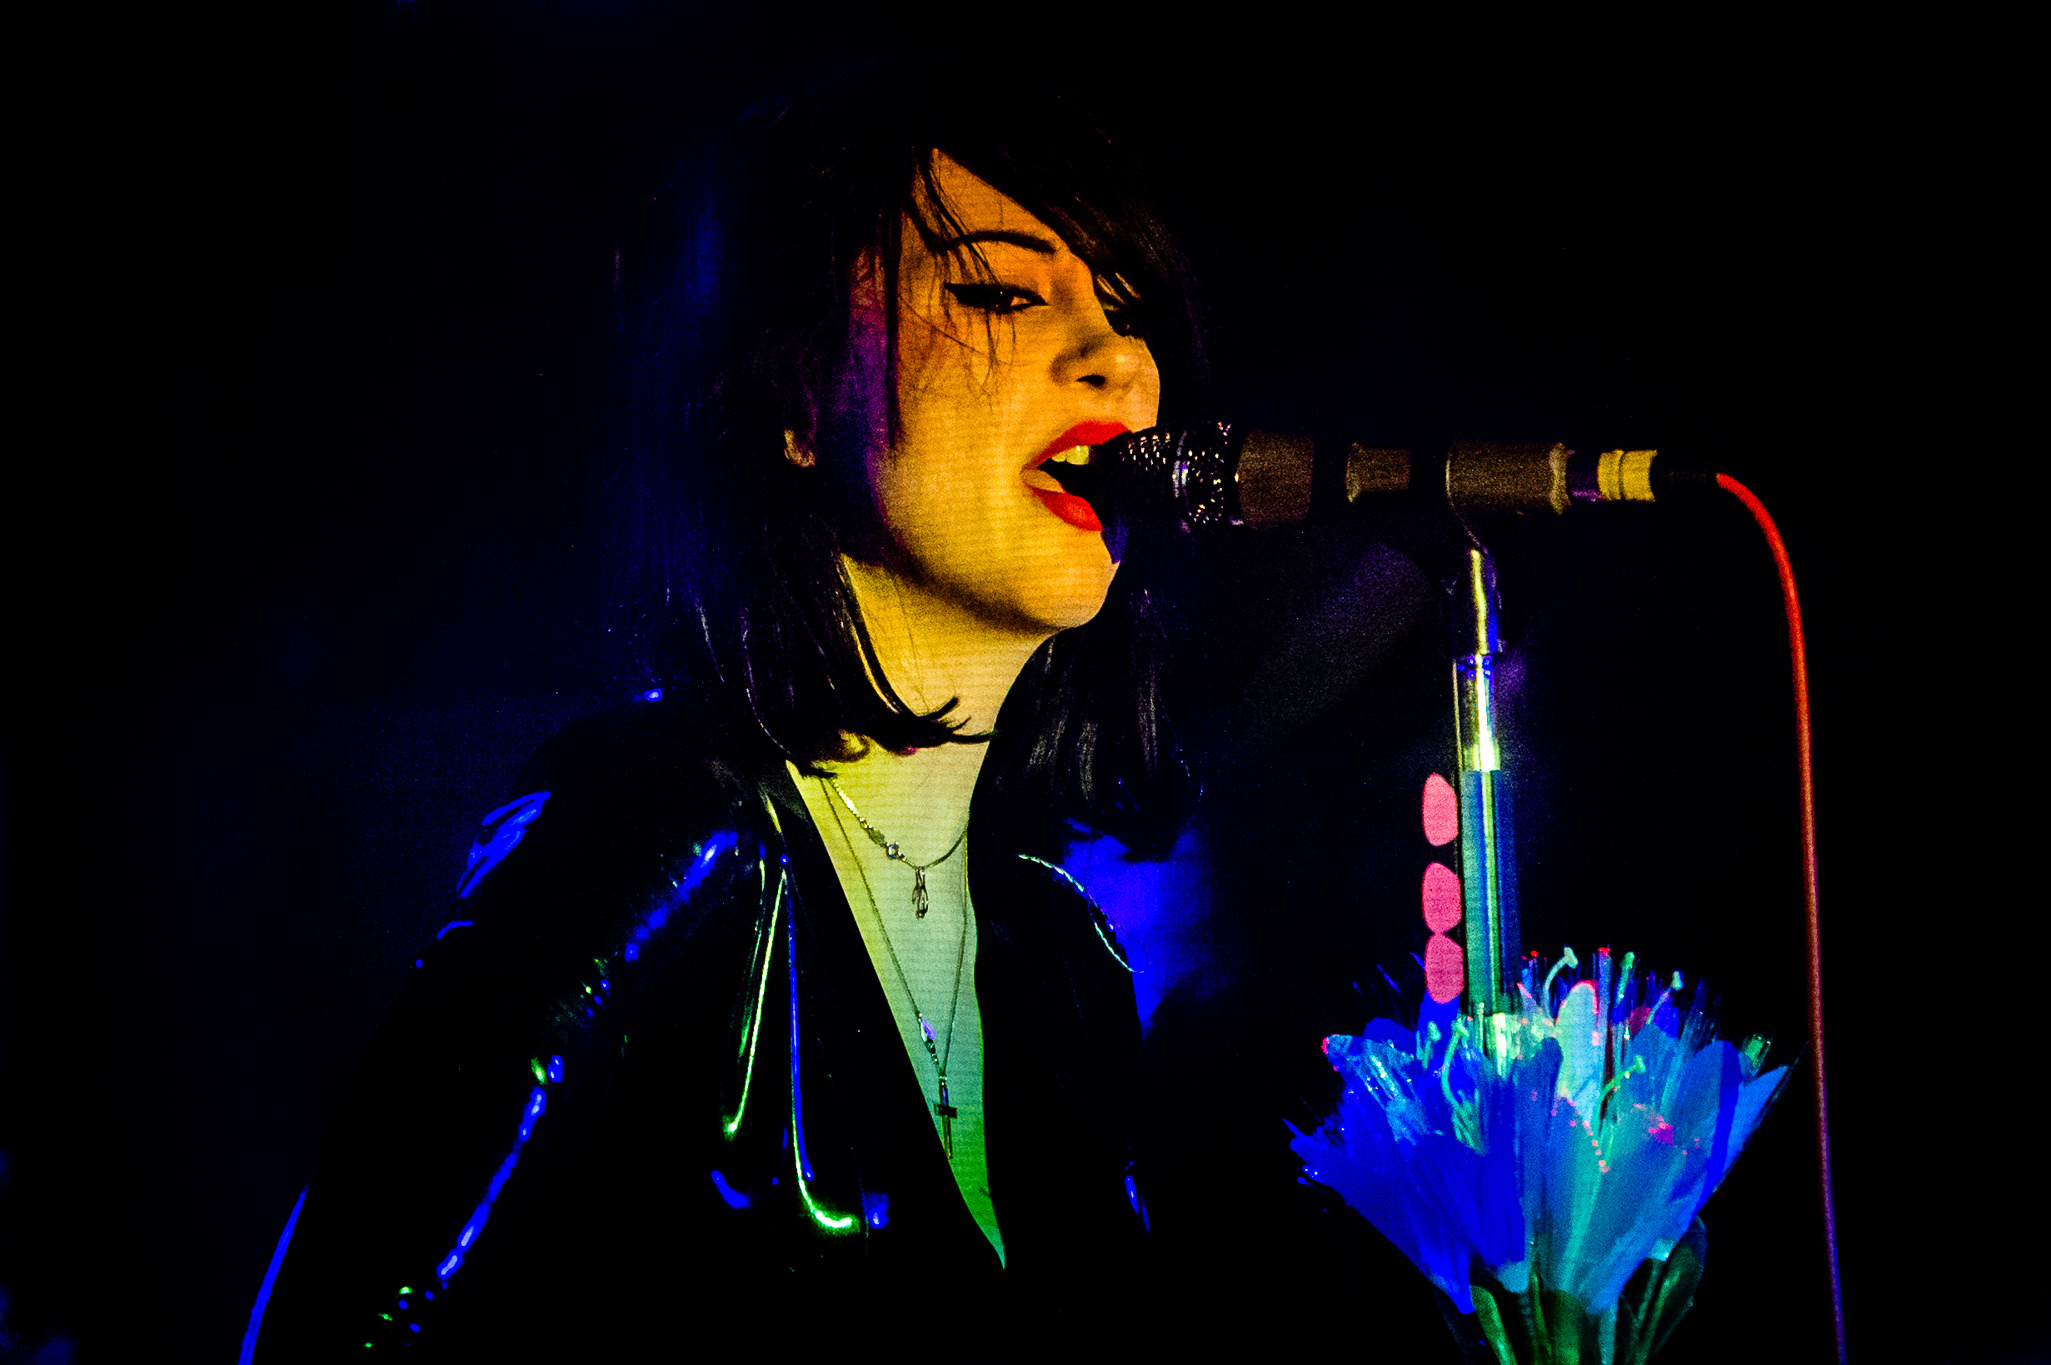 Sub Pop's Dum Dum Girls serves up dark pop from 'Too True' at Empty Bottle, March 31, 2014.